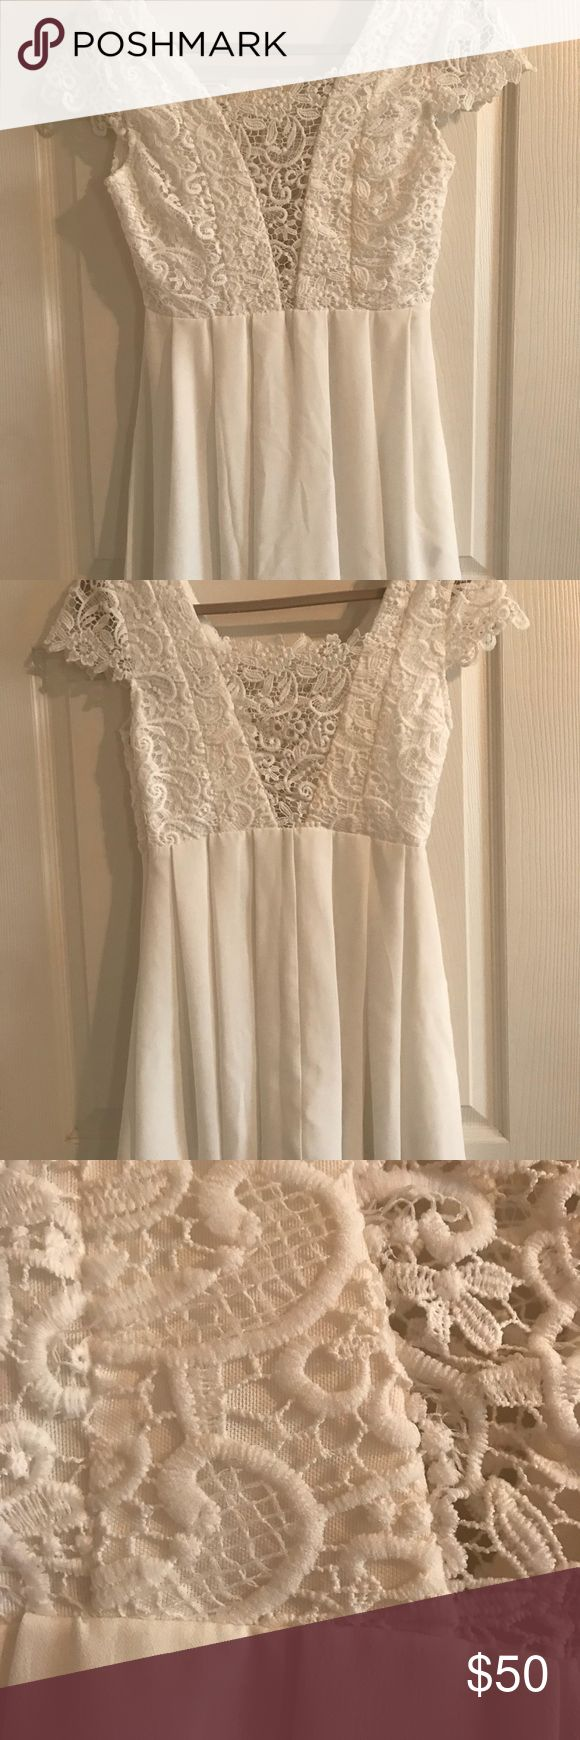 """Lulus white dress Batchorlette or fun party dress! Bought it for a batchelorette party. Never worn. Tags have been removed.    Medium: Bust- 35""""-36"""" Waist- 28""""-29"""" Hip- 37""""-38""""  US Size 4  A fitted top with a deep V neckline in both front and back covered in see through lace. See through short sleeves, and a pleated chiffon skirt that flows. Hidden side zipper. Partially lined. 100% Polyester. Hand Wash. Lulu's Dresses Mini"""